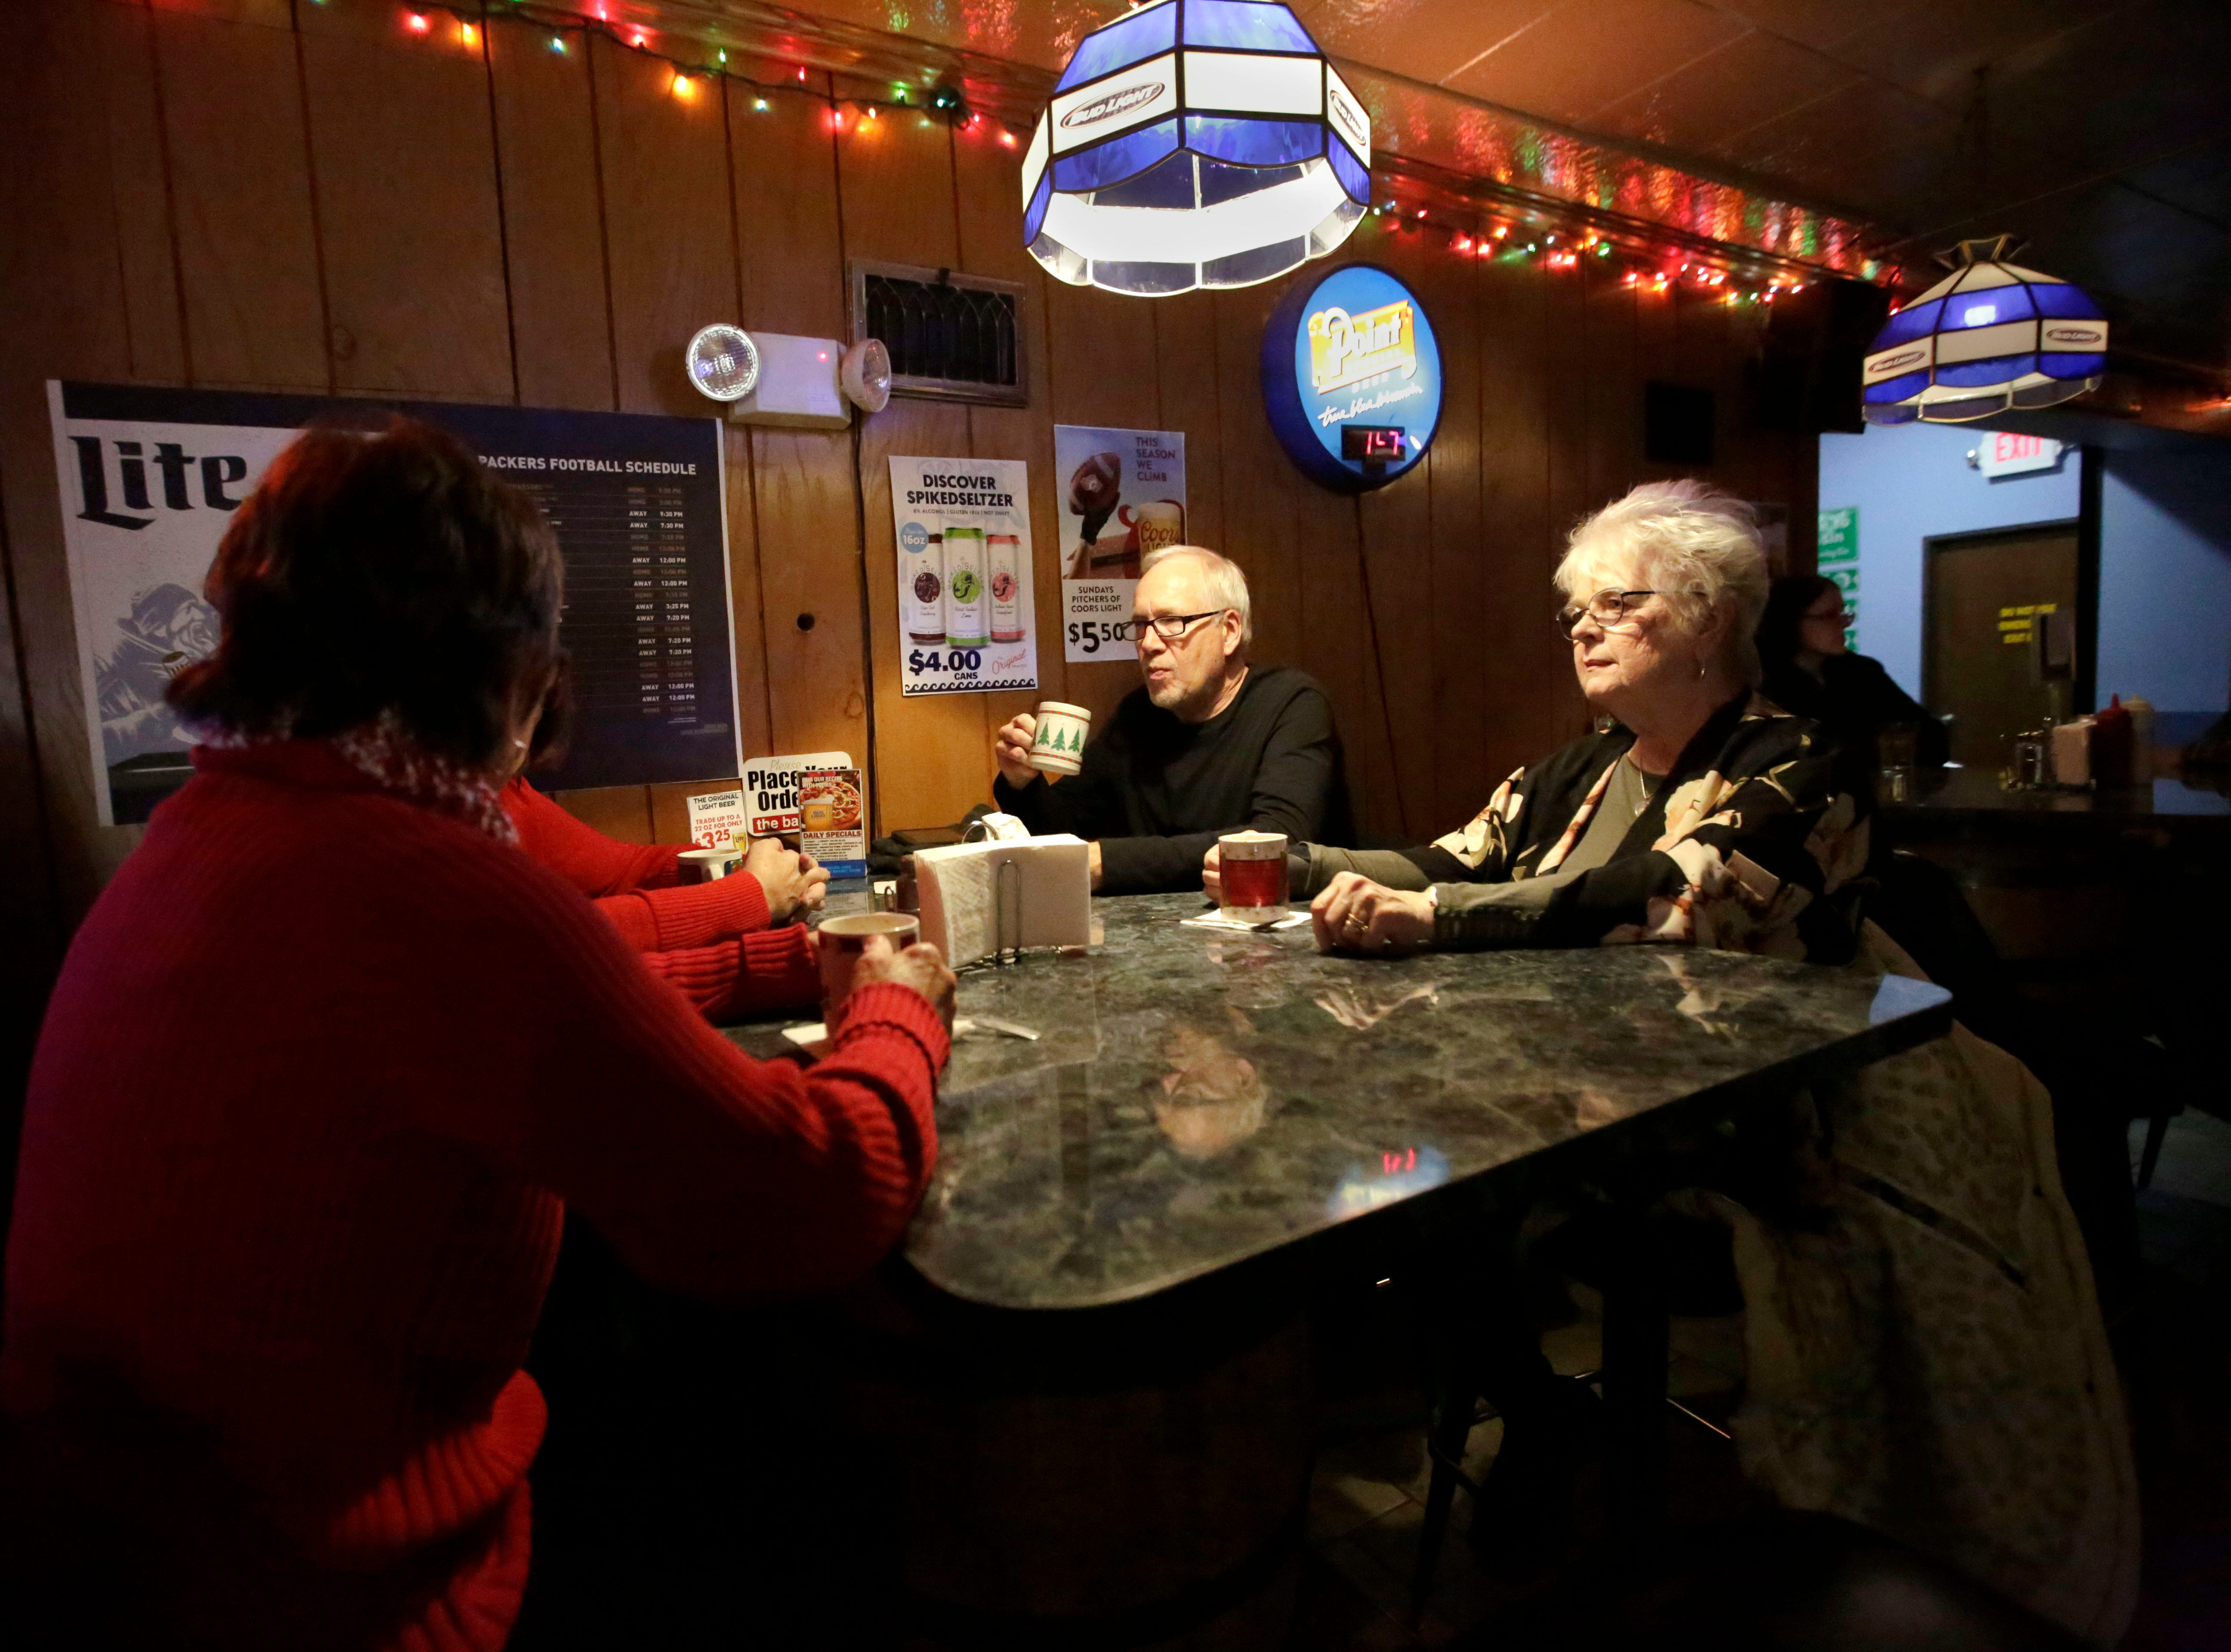 Patrons Barb Peterson, Phil Valitchka and Karen Wentz enjoy Tom and Jerrys on Monday, December 10, 2018, at The Domino Bar in Wausau, Wis. The Domino serves the popular drink every year, from Thanksgiving until New Year's Day.Tork Mason/USA Today NETWORK-Wisconsin